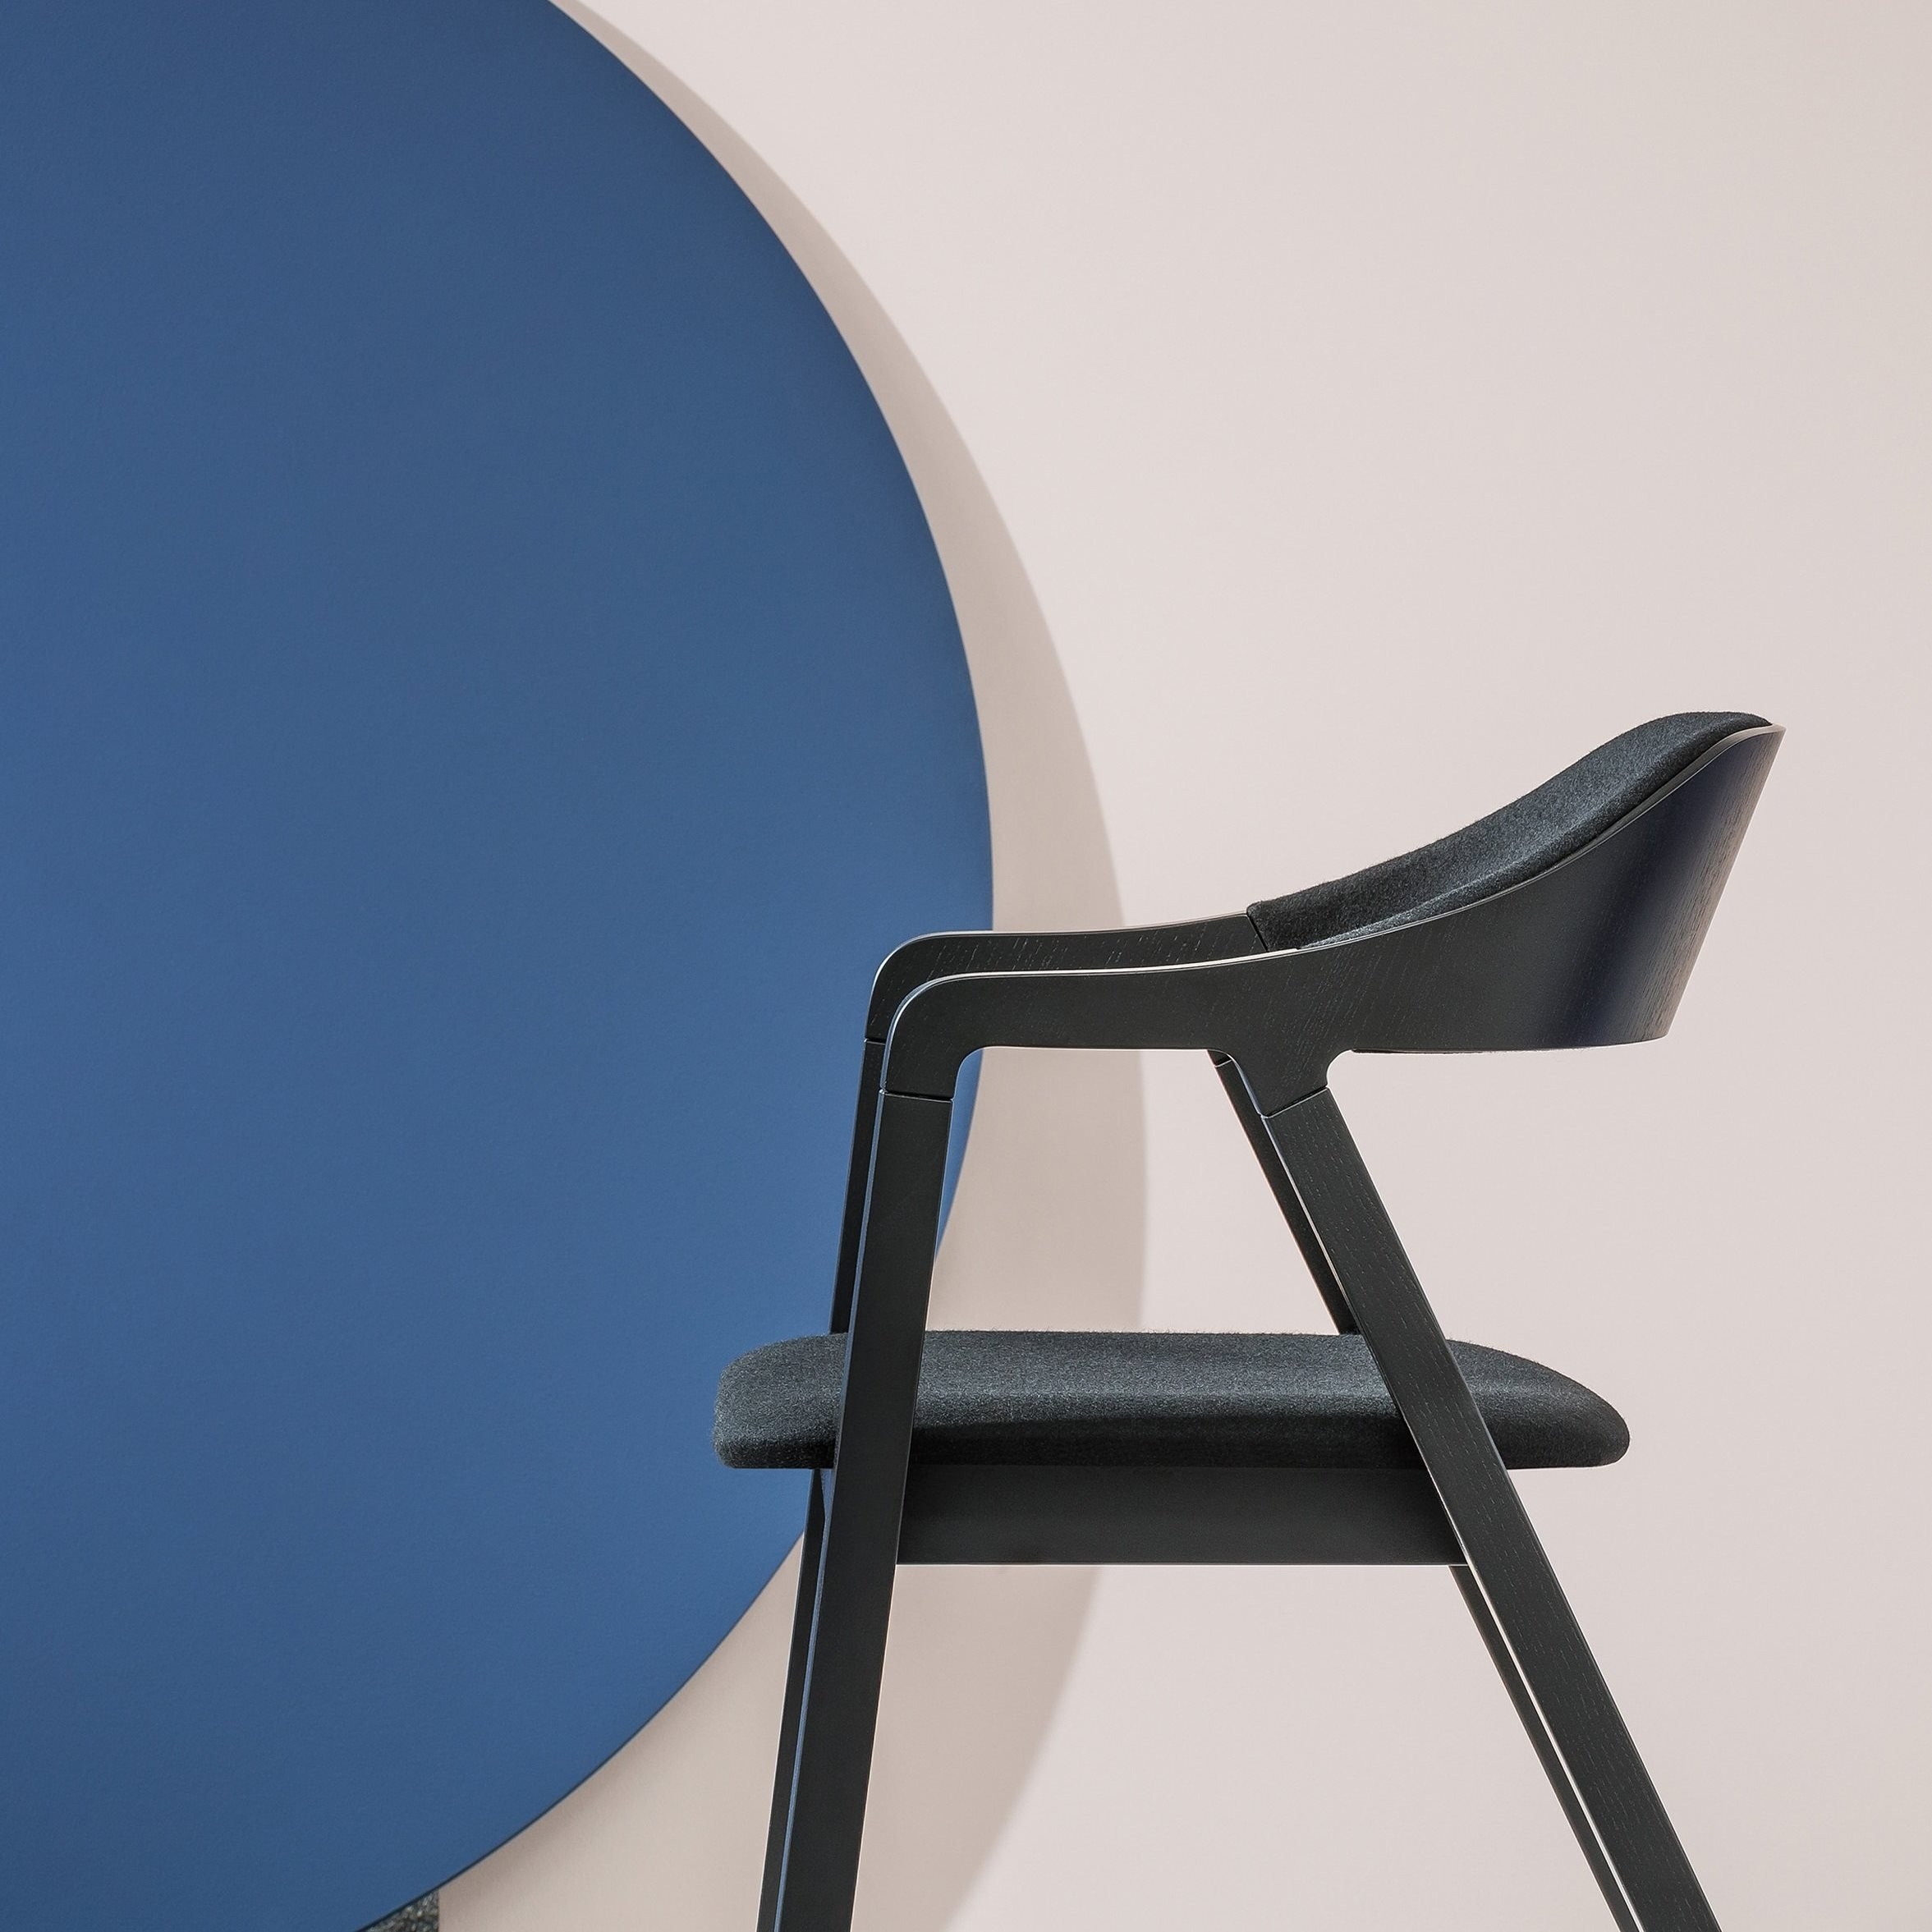 Layer Dining Chair from Billiani, designed by Michael Geldmacher